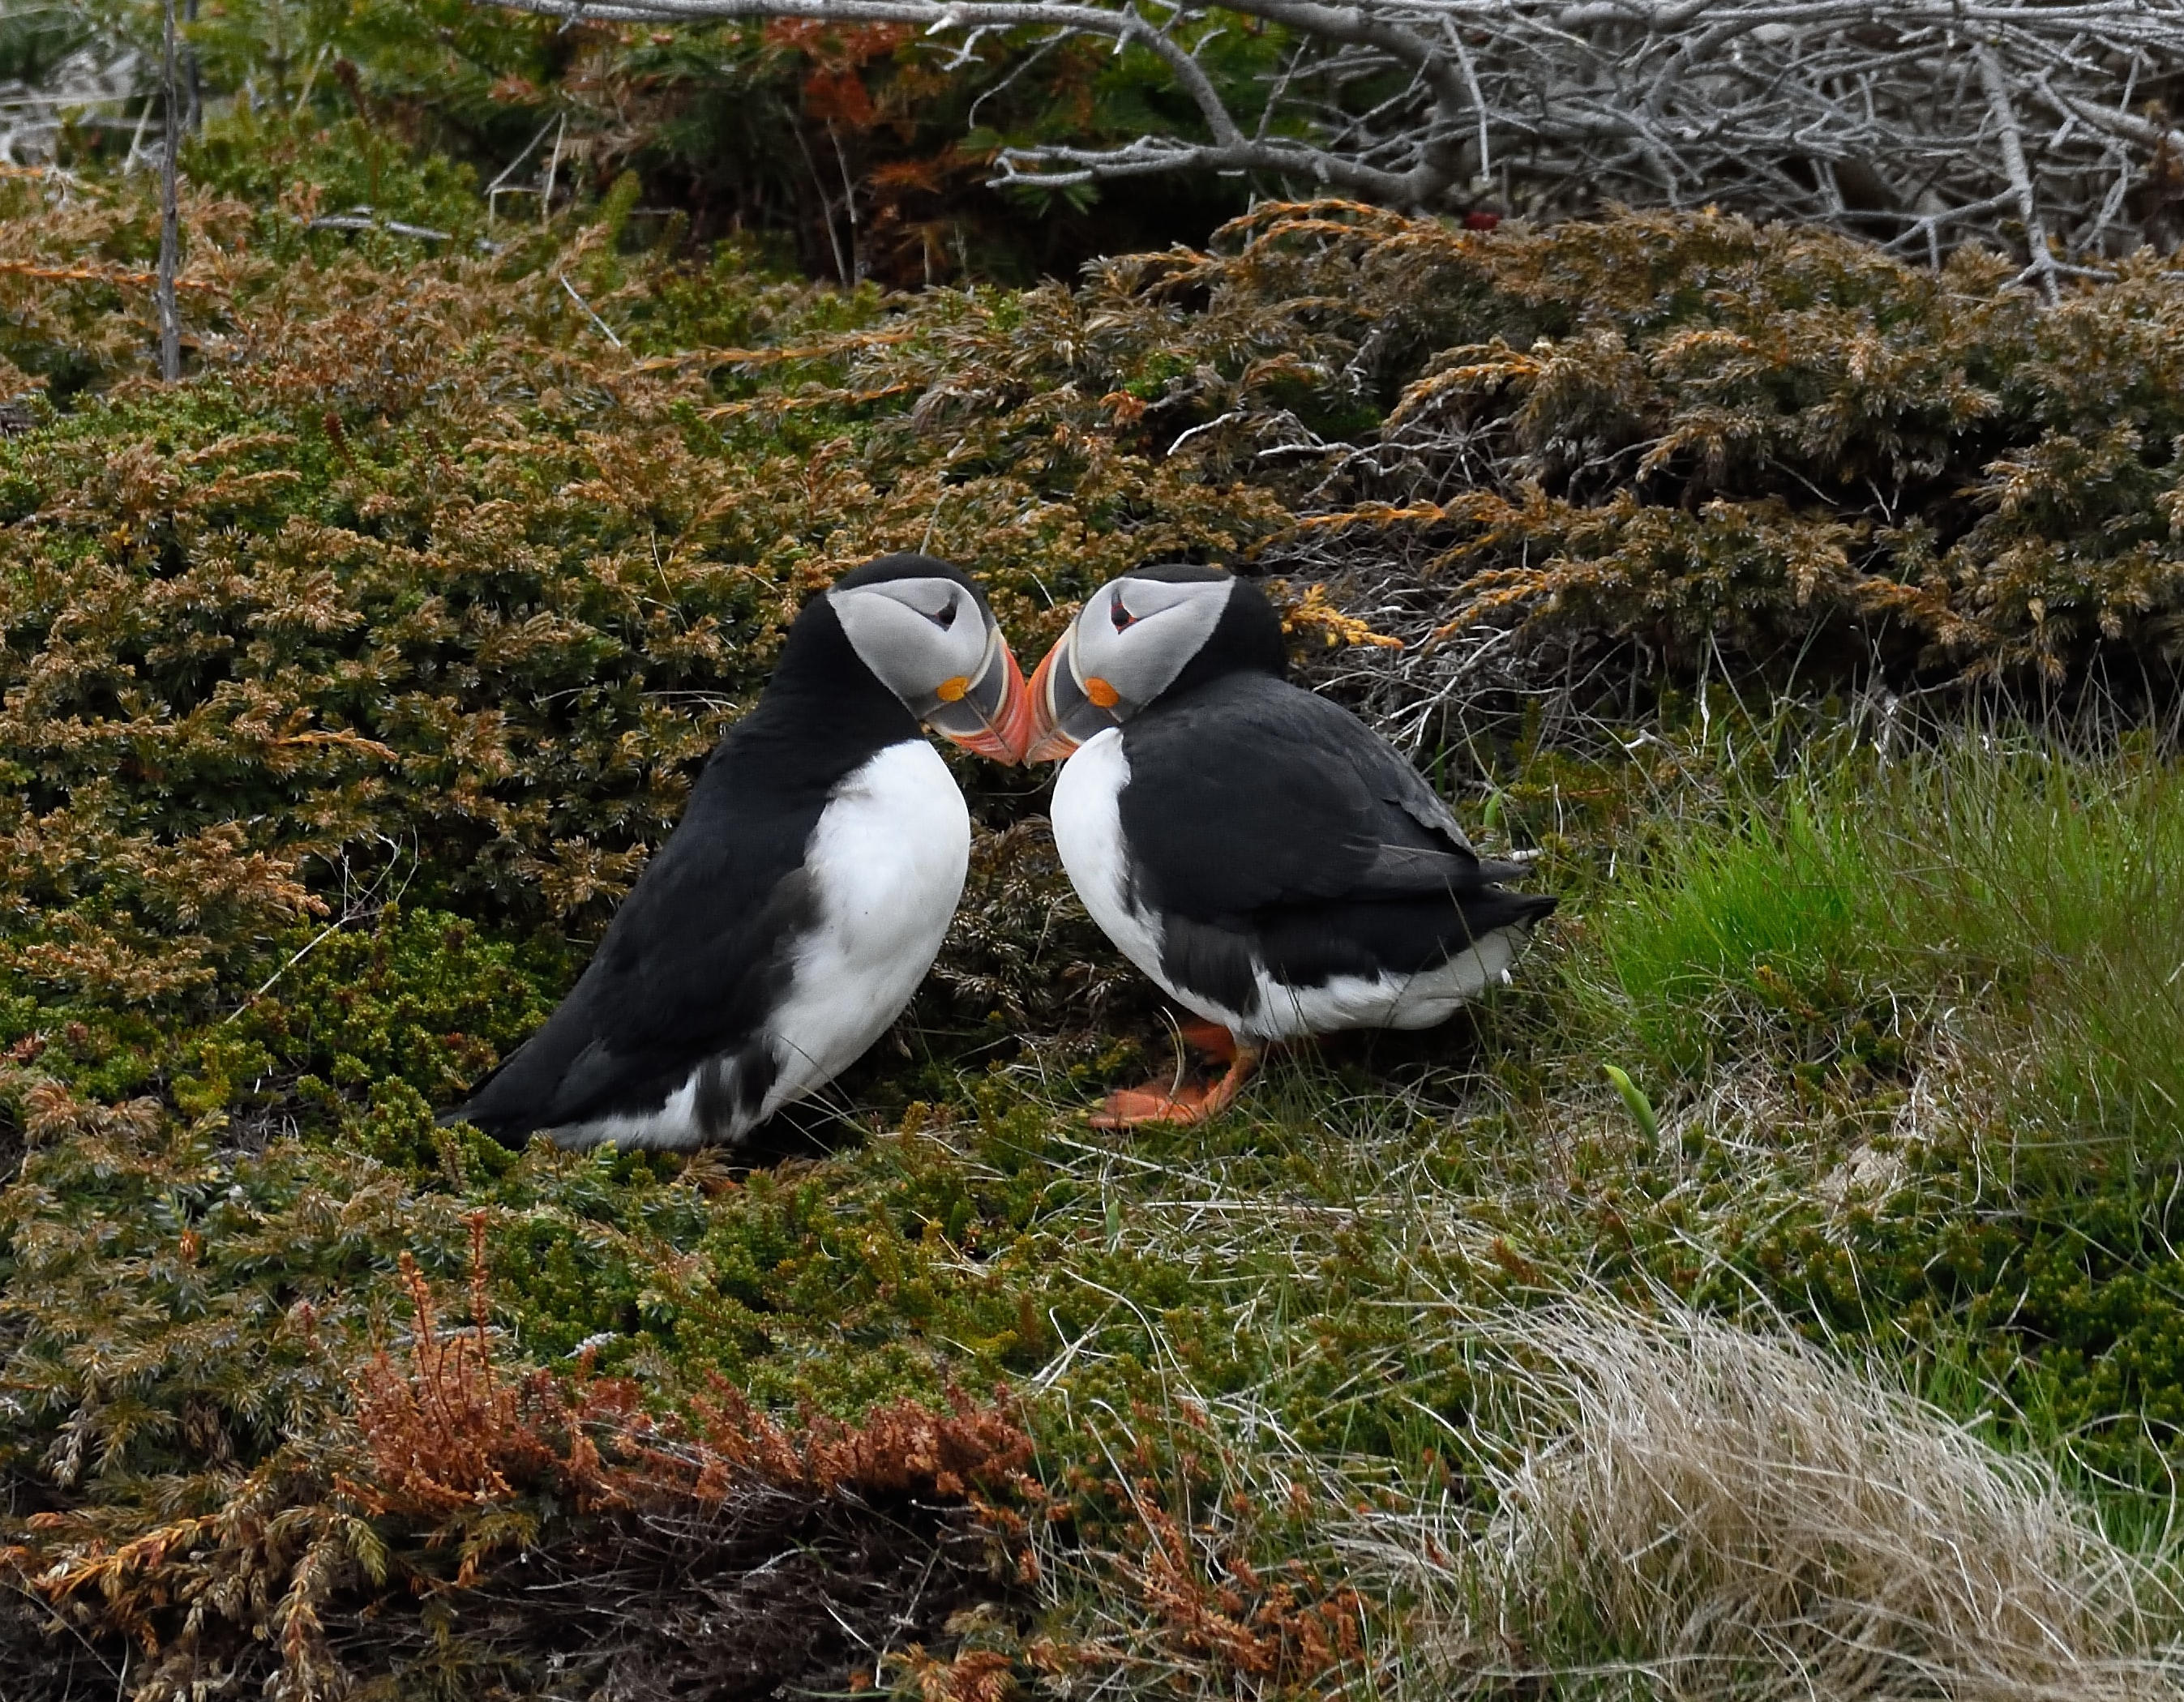 two puffin birds on grass